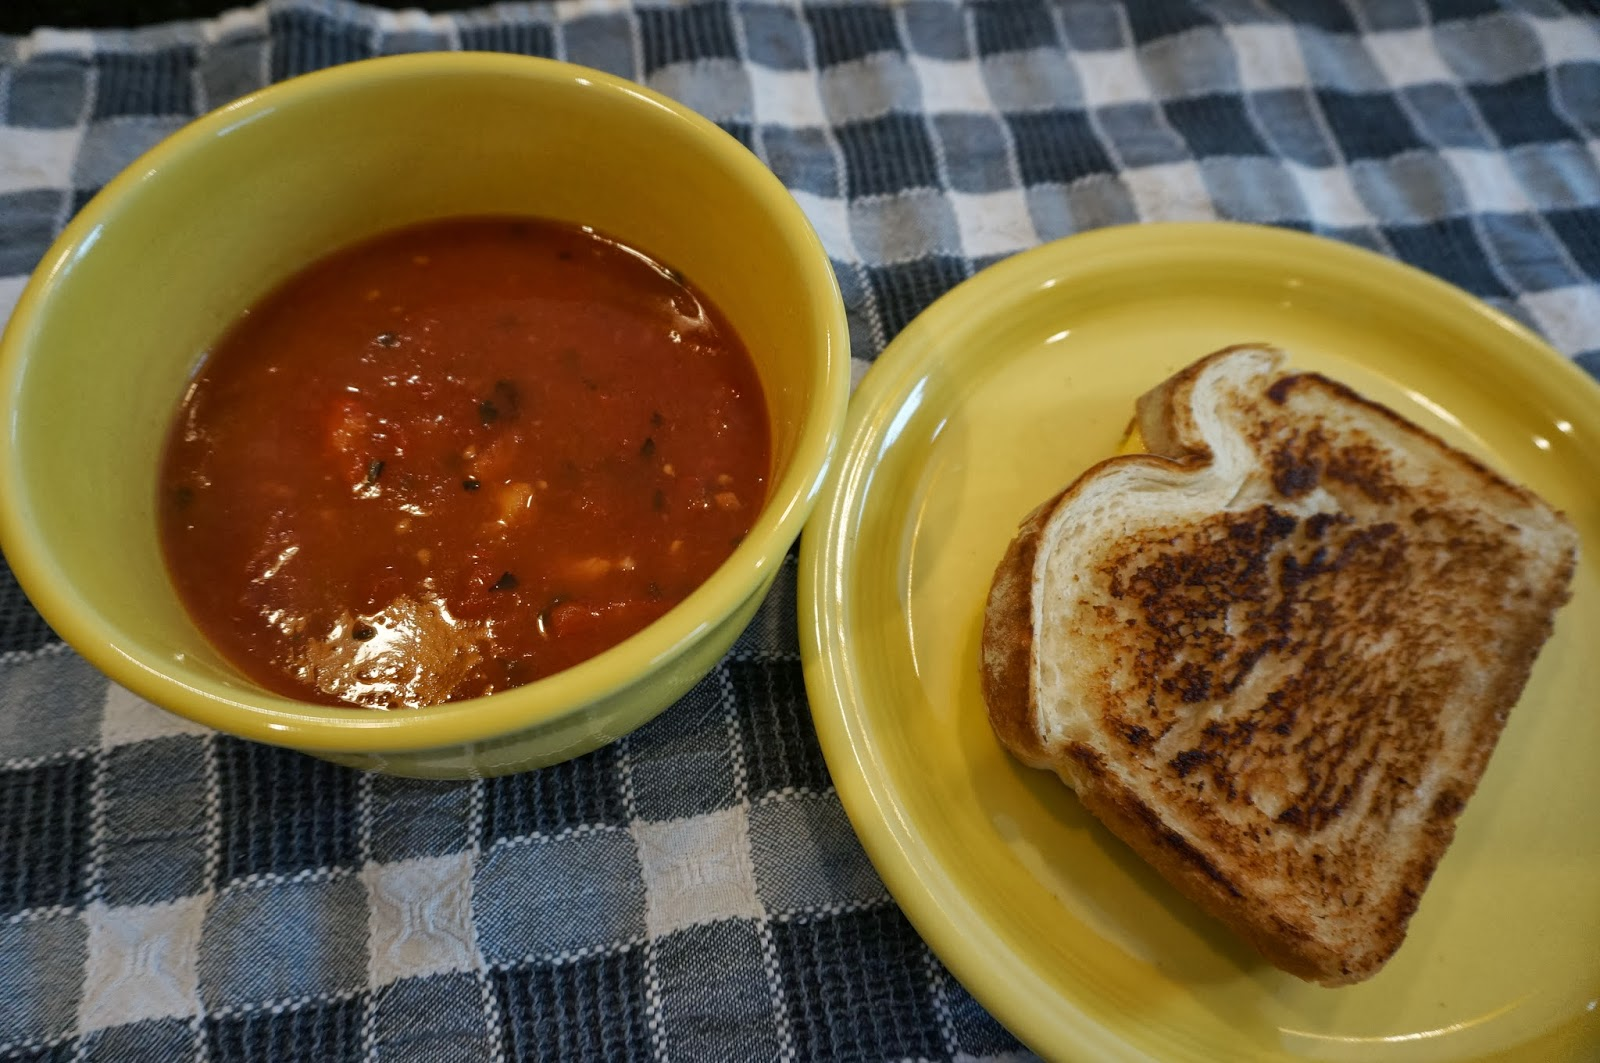 Tomato soup and sandwich, perfect for winter